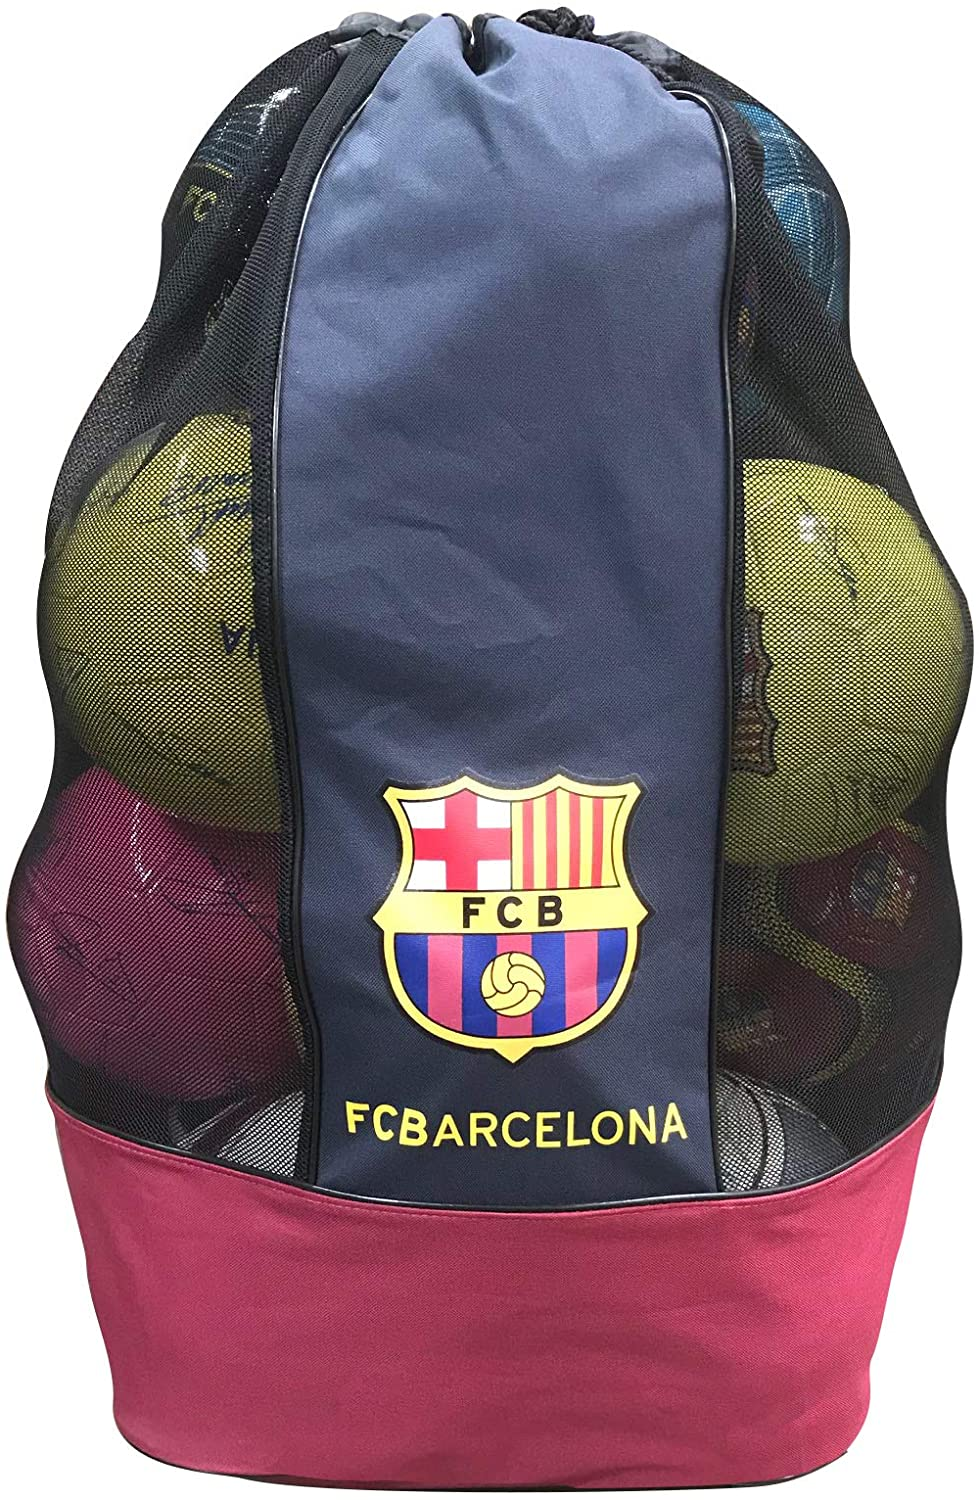 FC Barcelona Official Drawstring Sports Equipment Ball Bag Nylon Mesh Material Shoulder Strap Practice Ball Bag 17x17x31